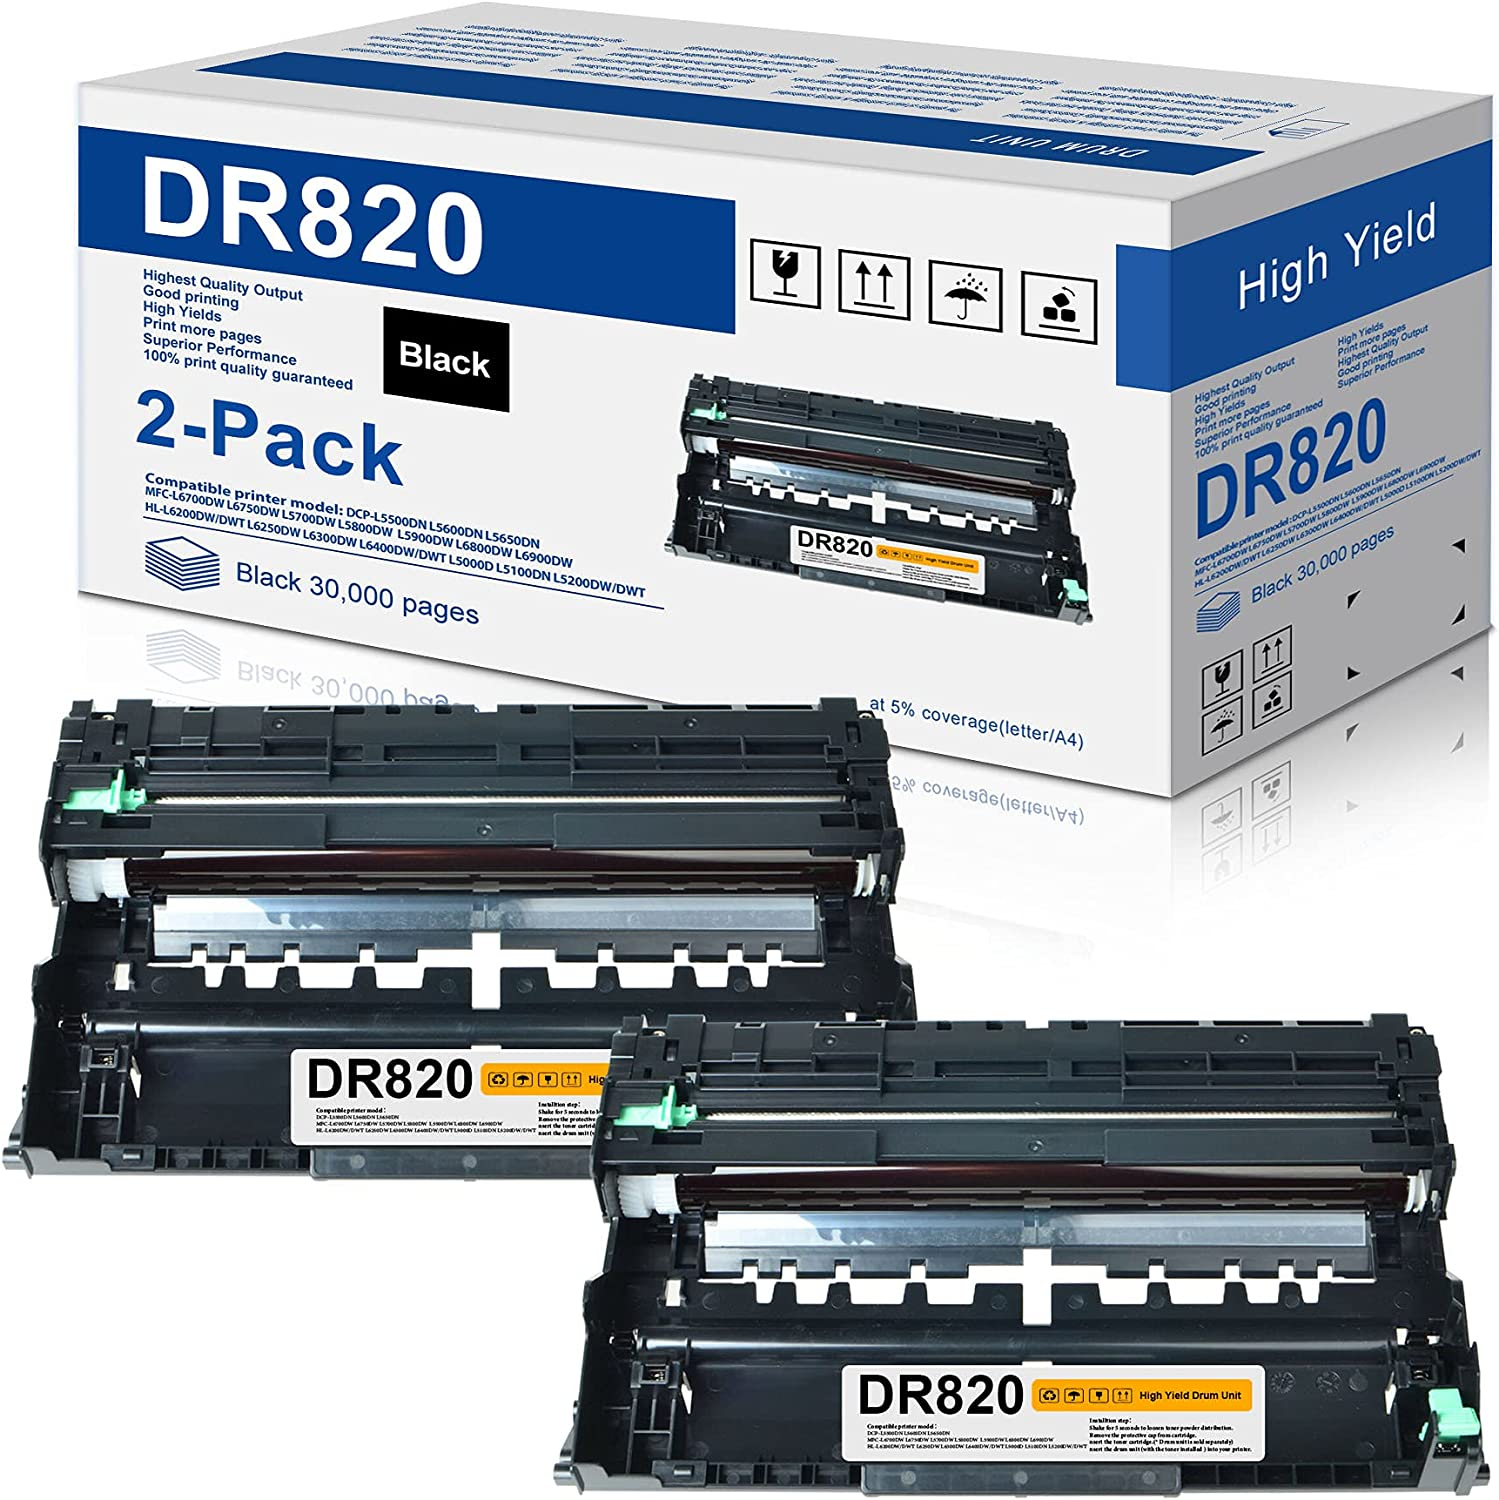 2-Pack Compatible Drum Unit Replacement for Brother DR820 DR 820 DR-820 to use with HL-L6200DW MFC-L5900DW HL-L5100DN MFC-L5800DW MFC-L5700DW HL-L5200DWT MFC-L6700DW HL-L5200DW Printer